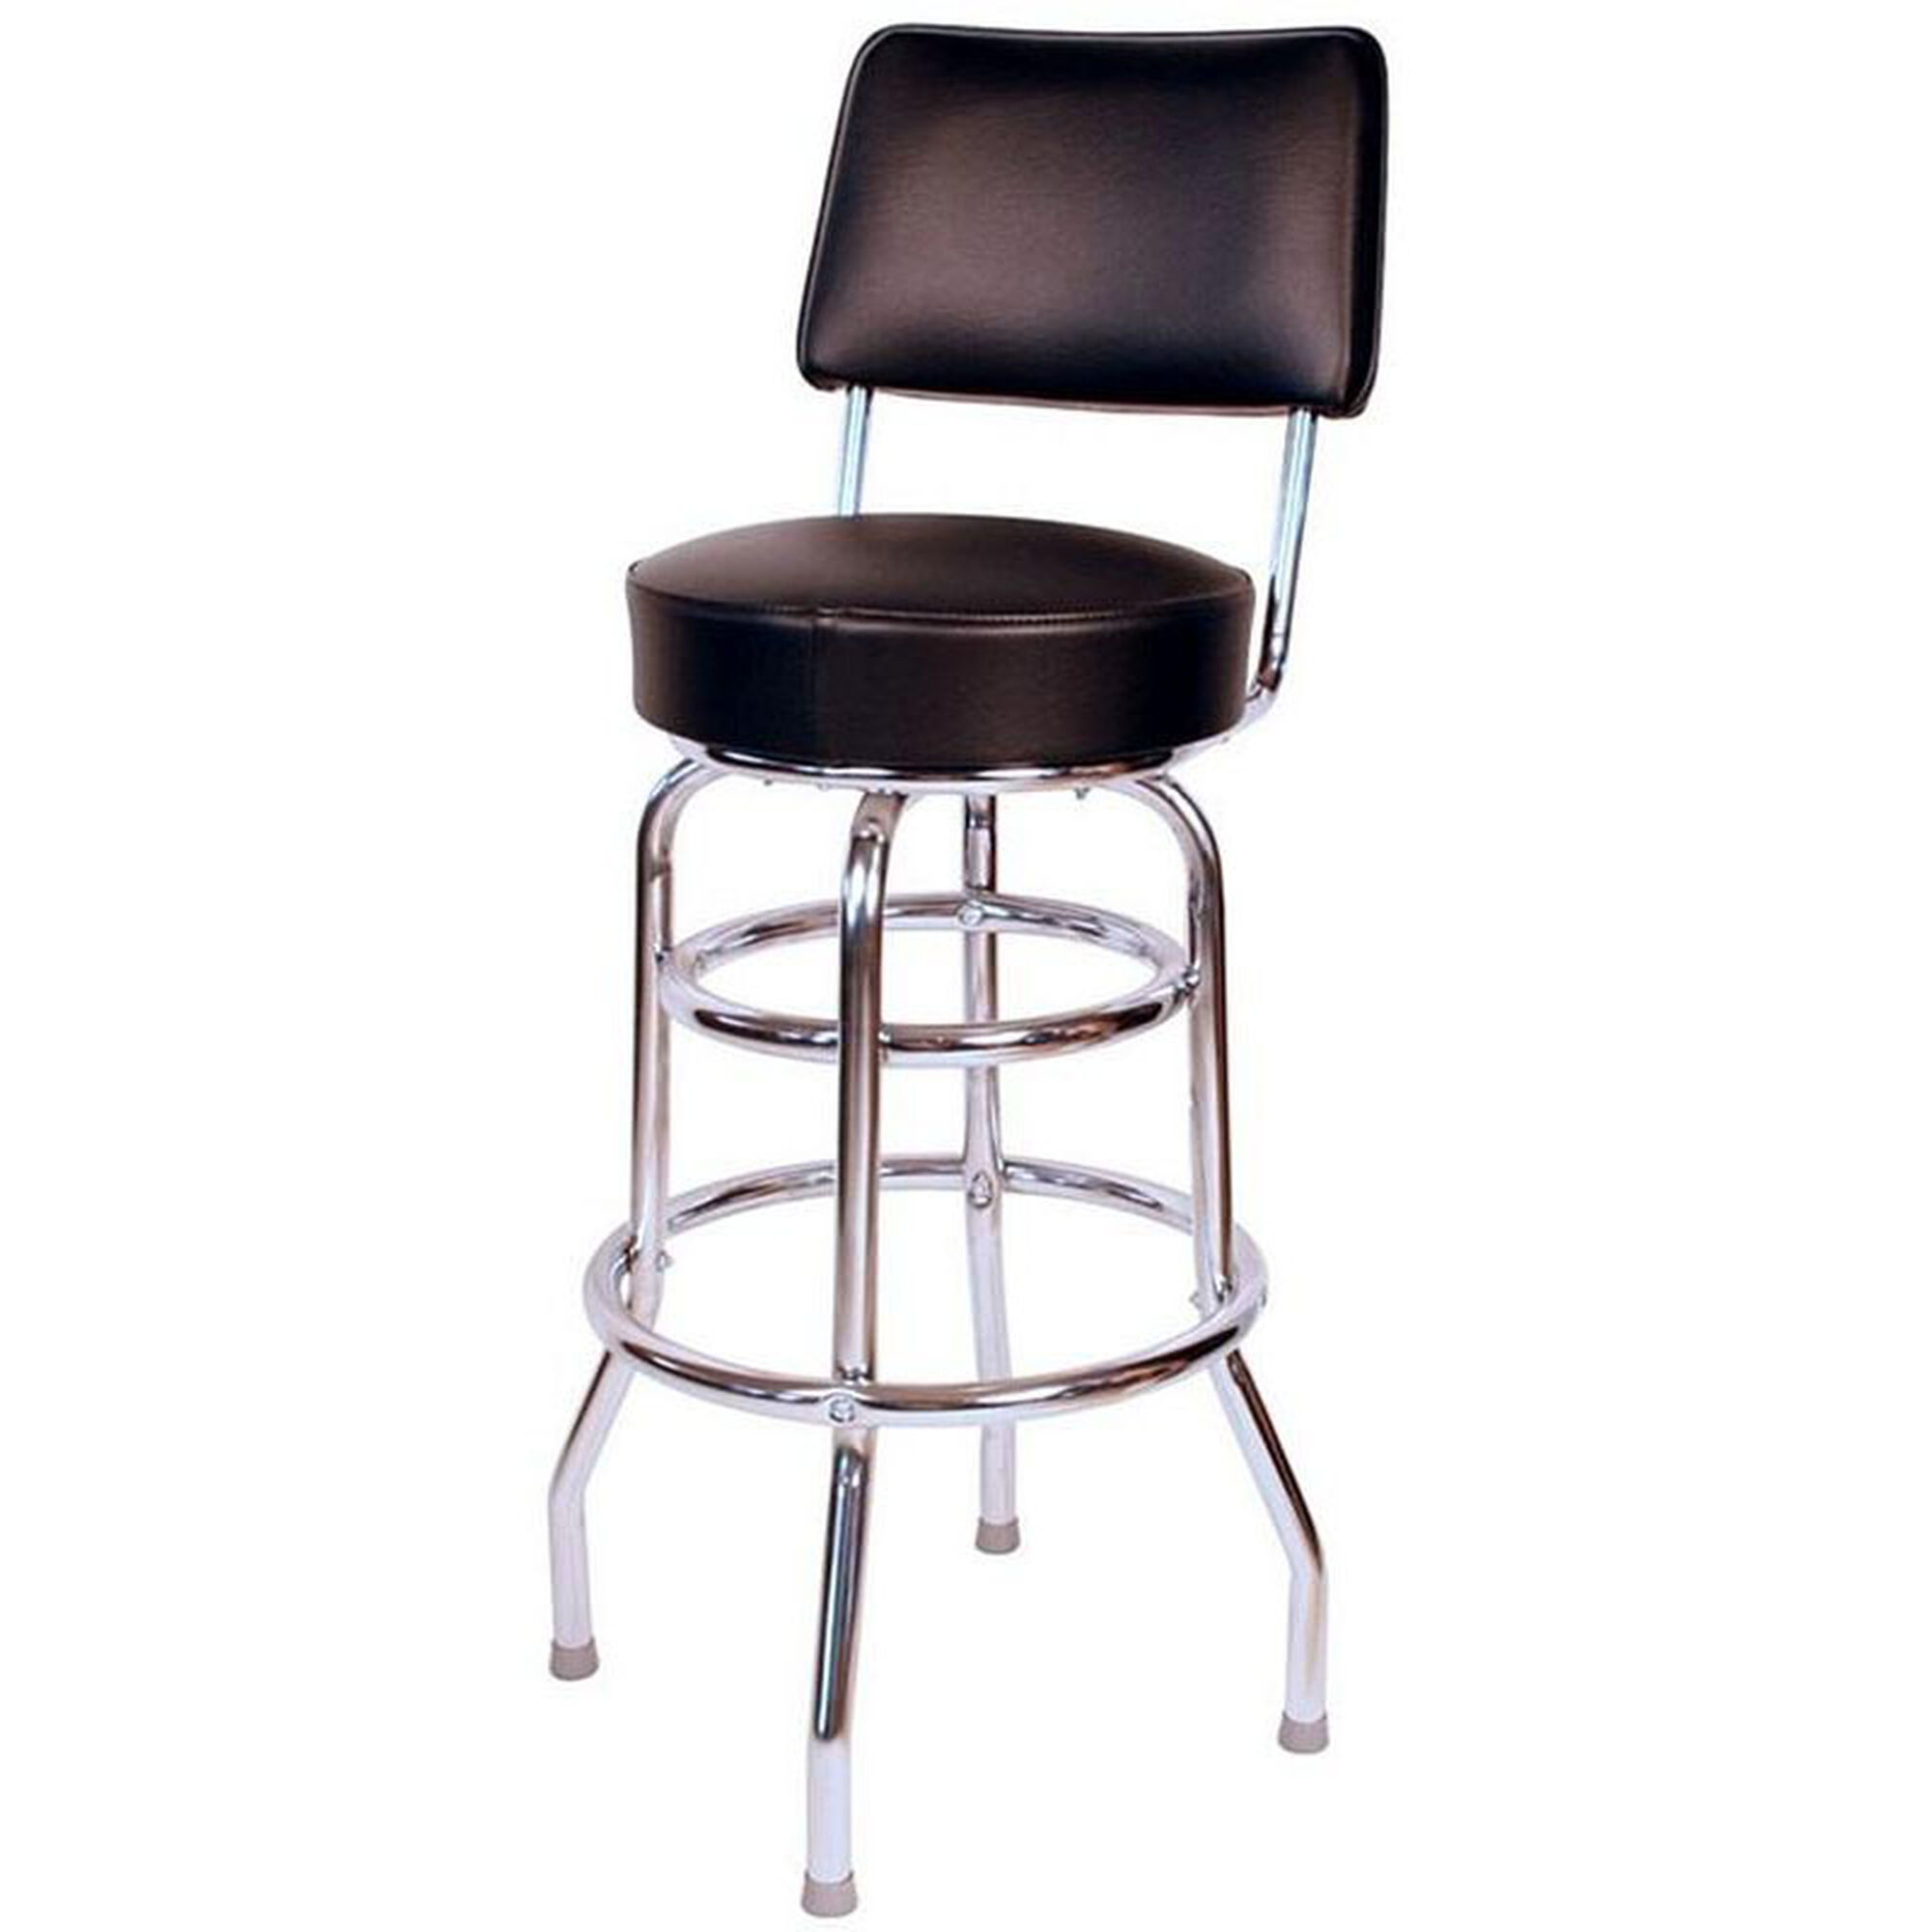 Super Retro Style Double Ring Chrome Frame 30 Swivel Bar Stool With Backrest And Padded Seat Black Vinyl Andrewgaddart Wooden Chair Designs For Living Room Andrewgaddartcom